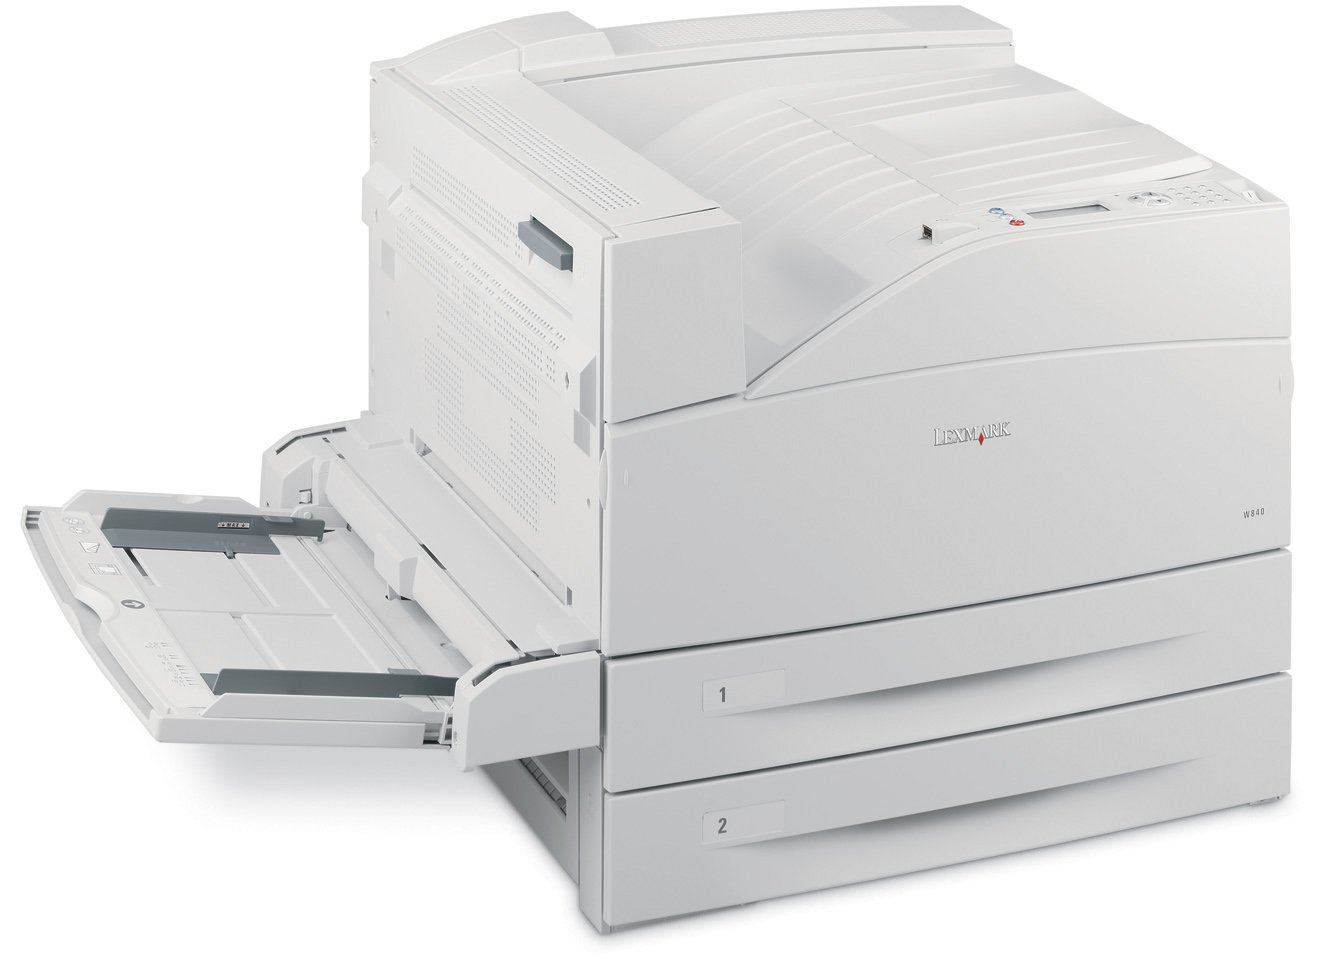 Lexmark W840 Toner Cartridges